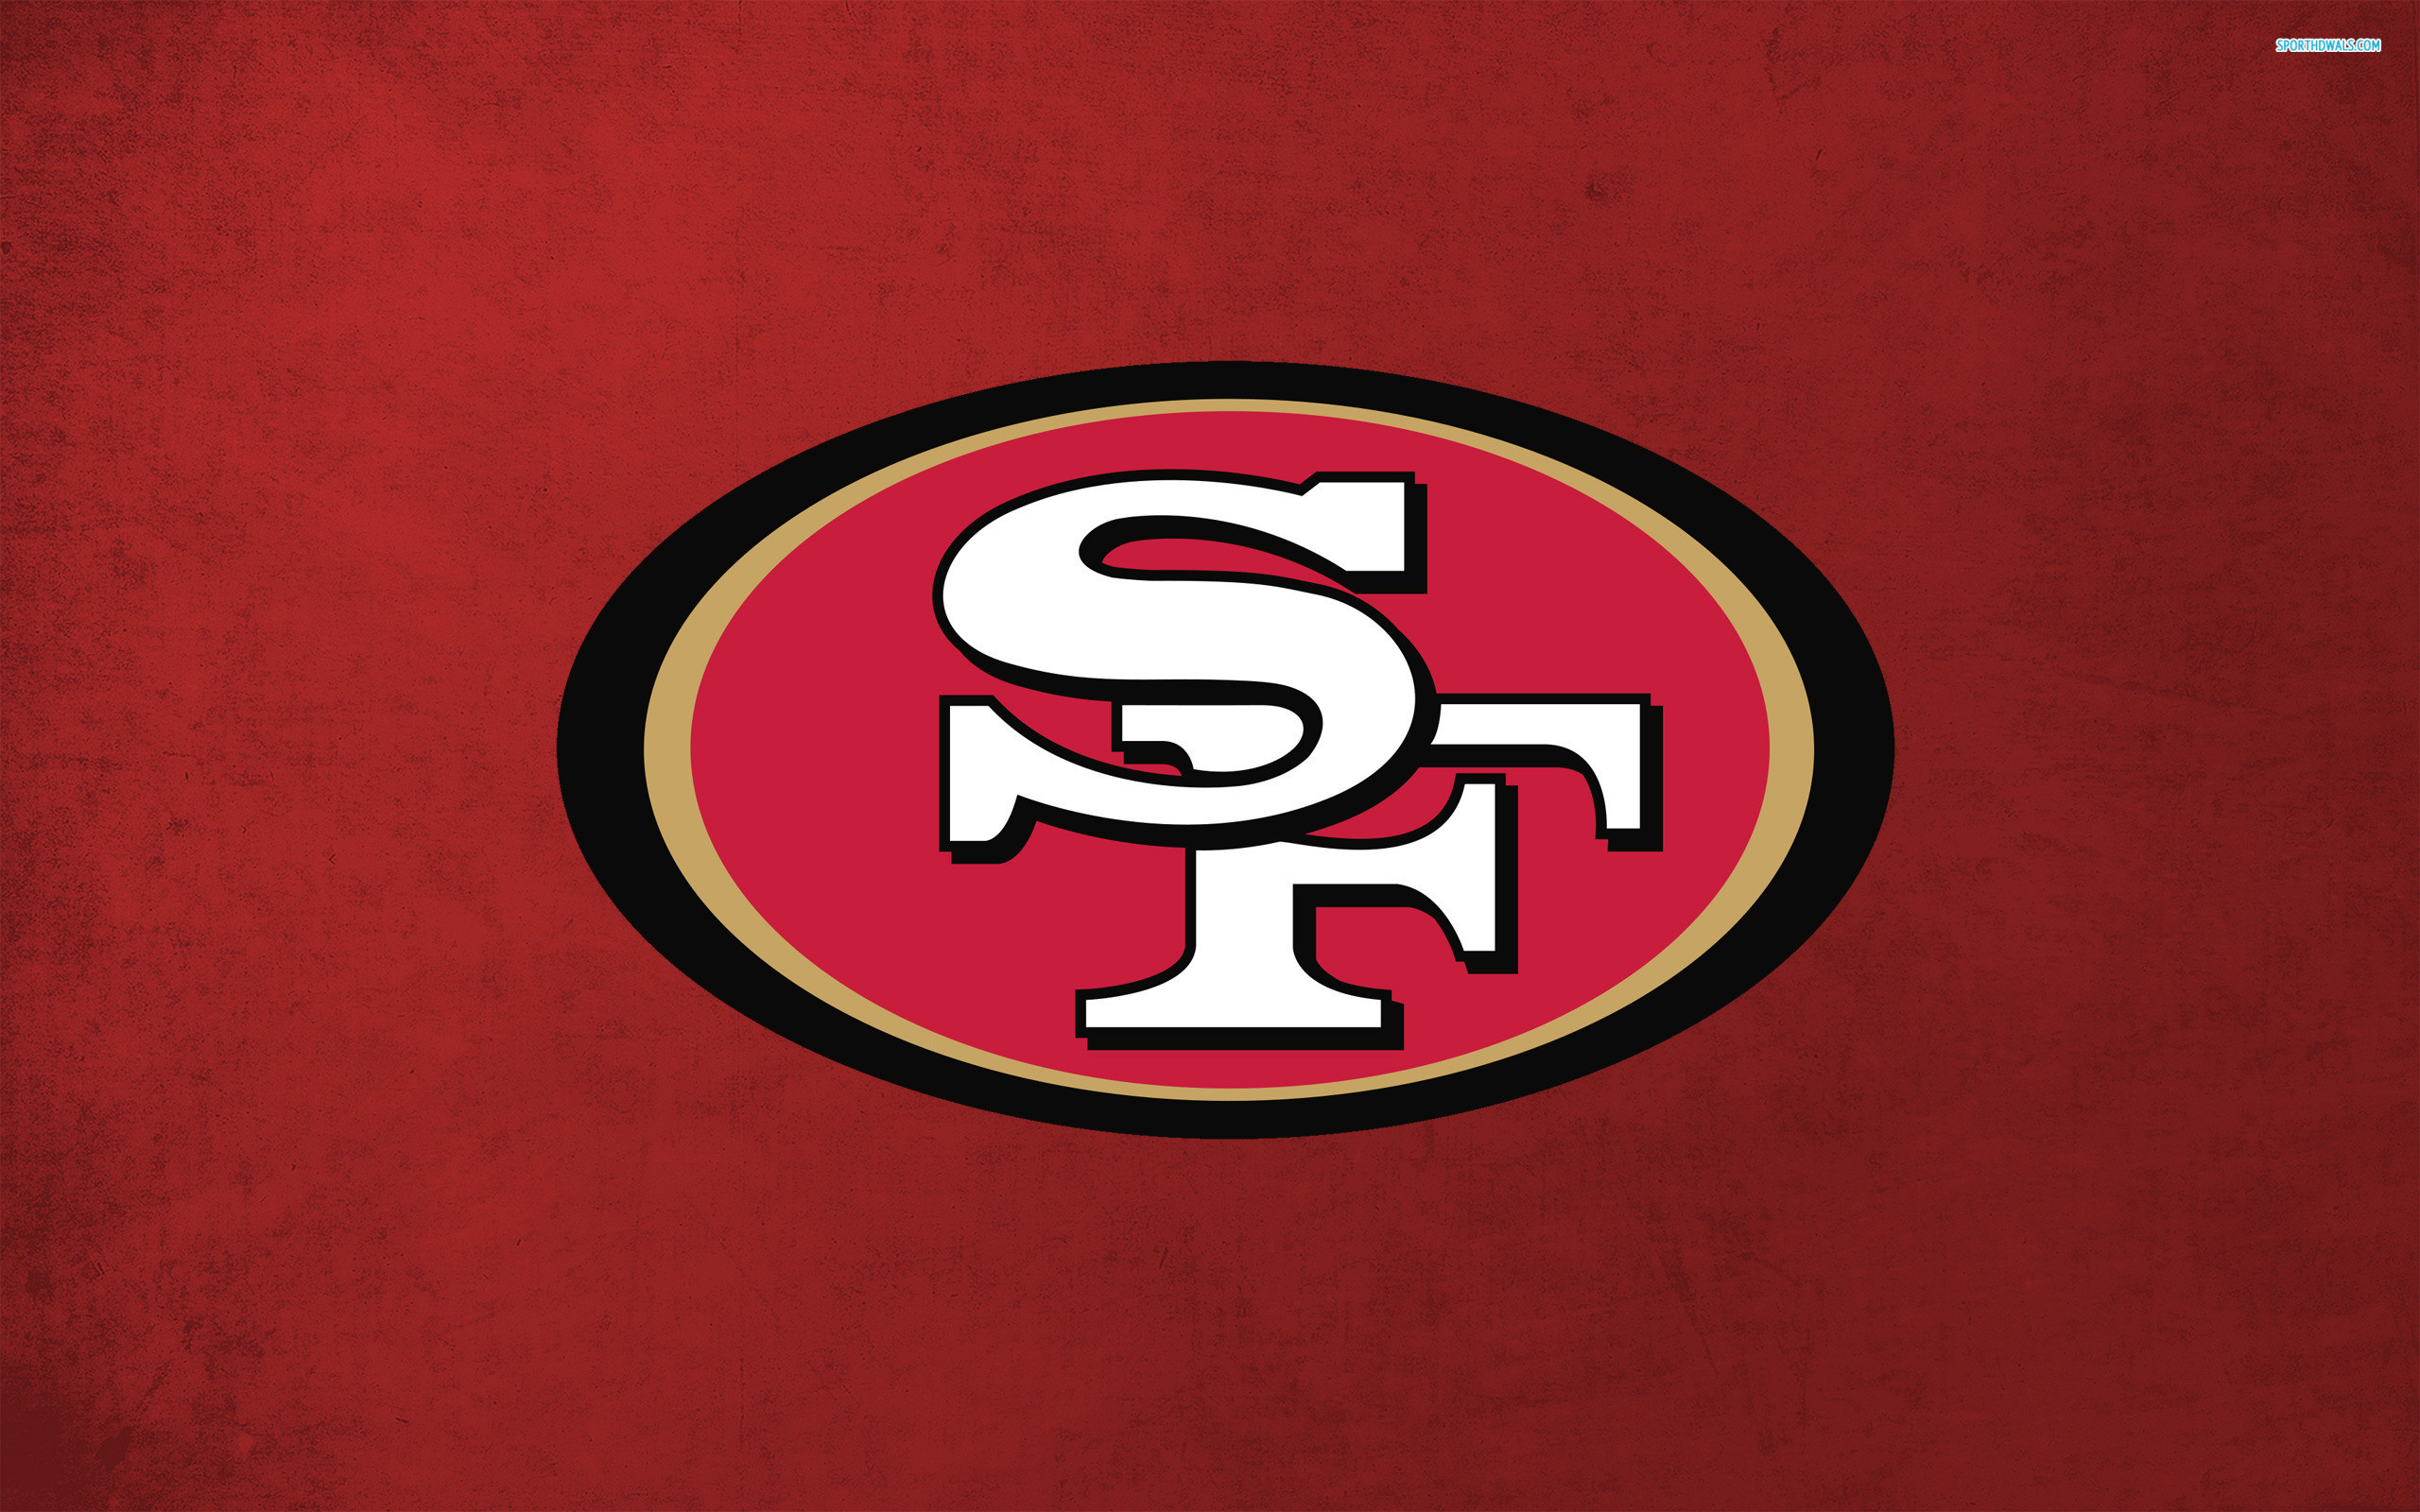 2560x1600 San Francisco 49ers HD Wallpaper | Background Image |  | ID:219283  - Wallpaper Abyss